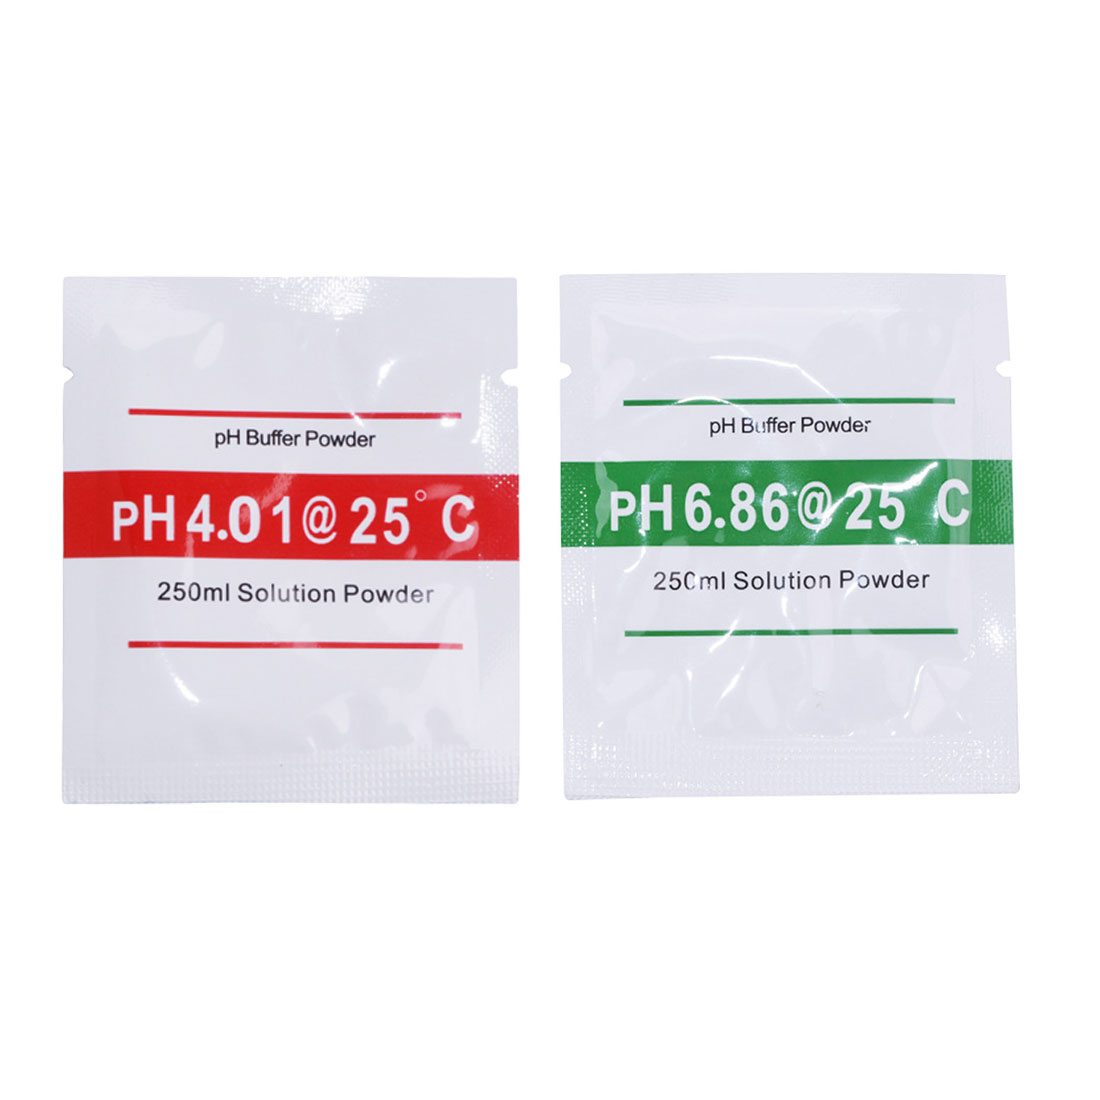 Hot!2 Bags PH Buffer Powder for PH Test Meter Measure Calibration Solution 1pcs 4.01 and 1pcs 6.86 Calibration Point